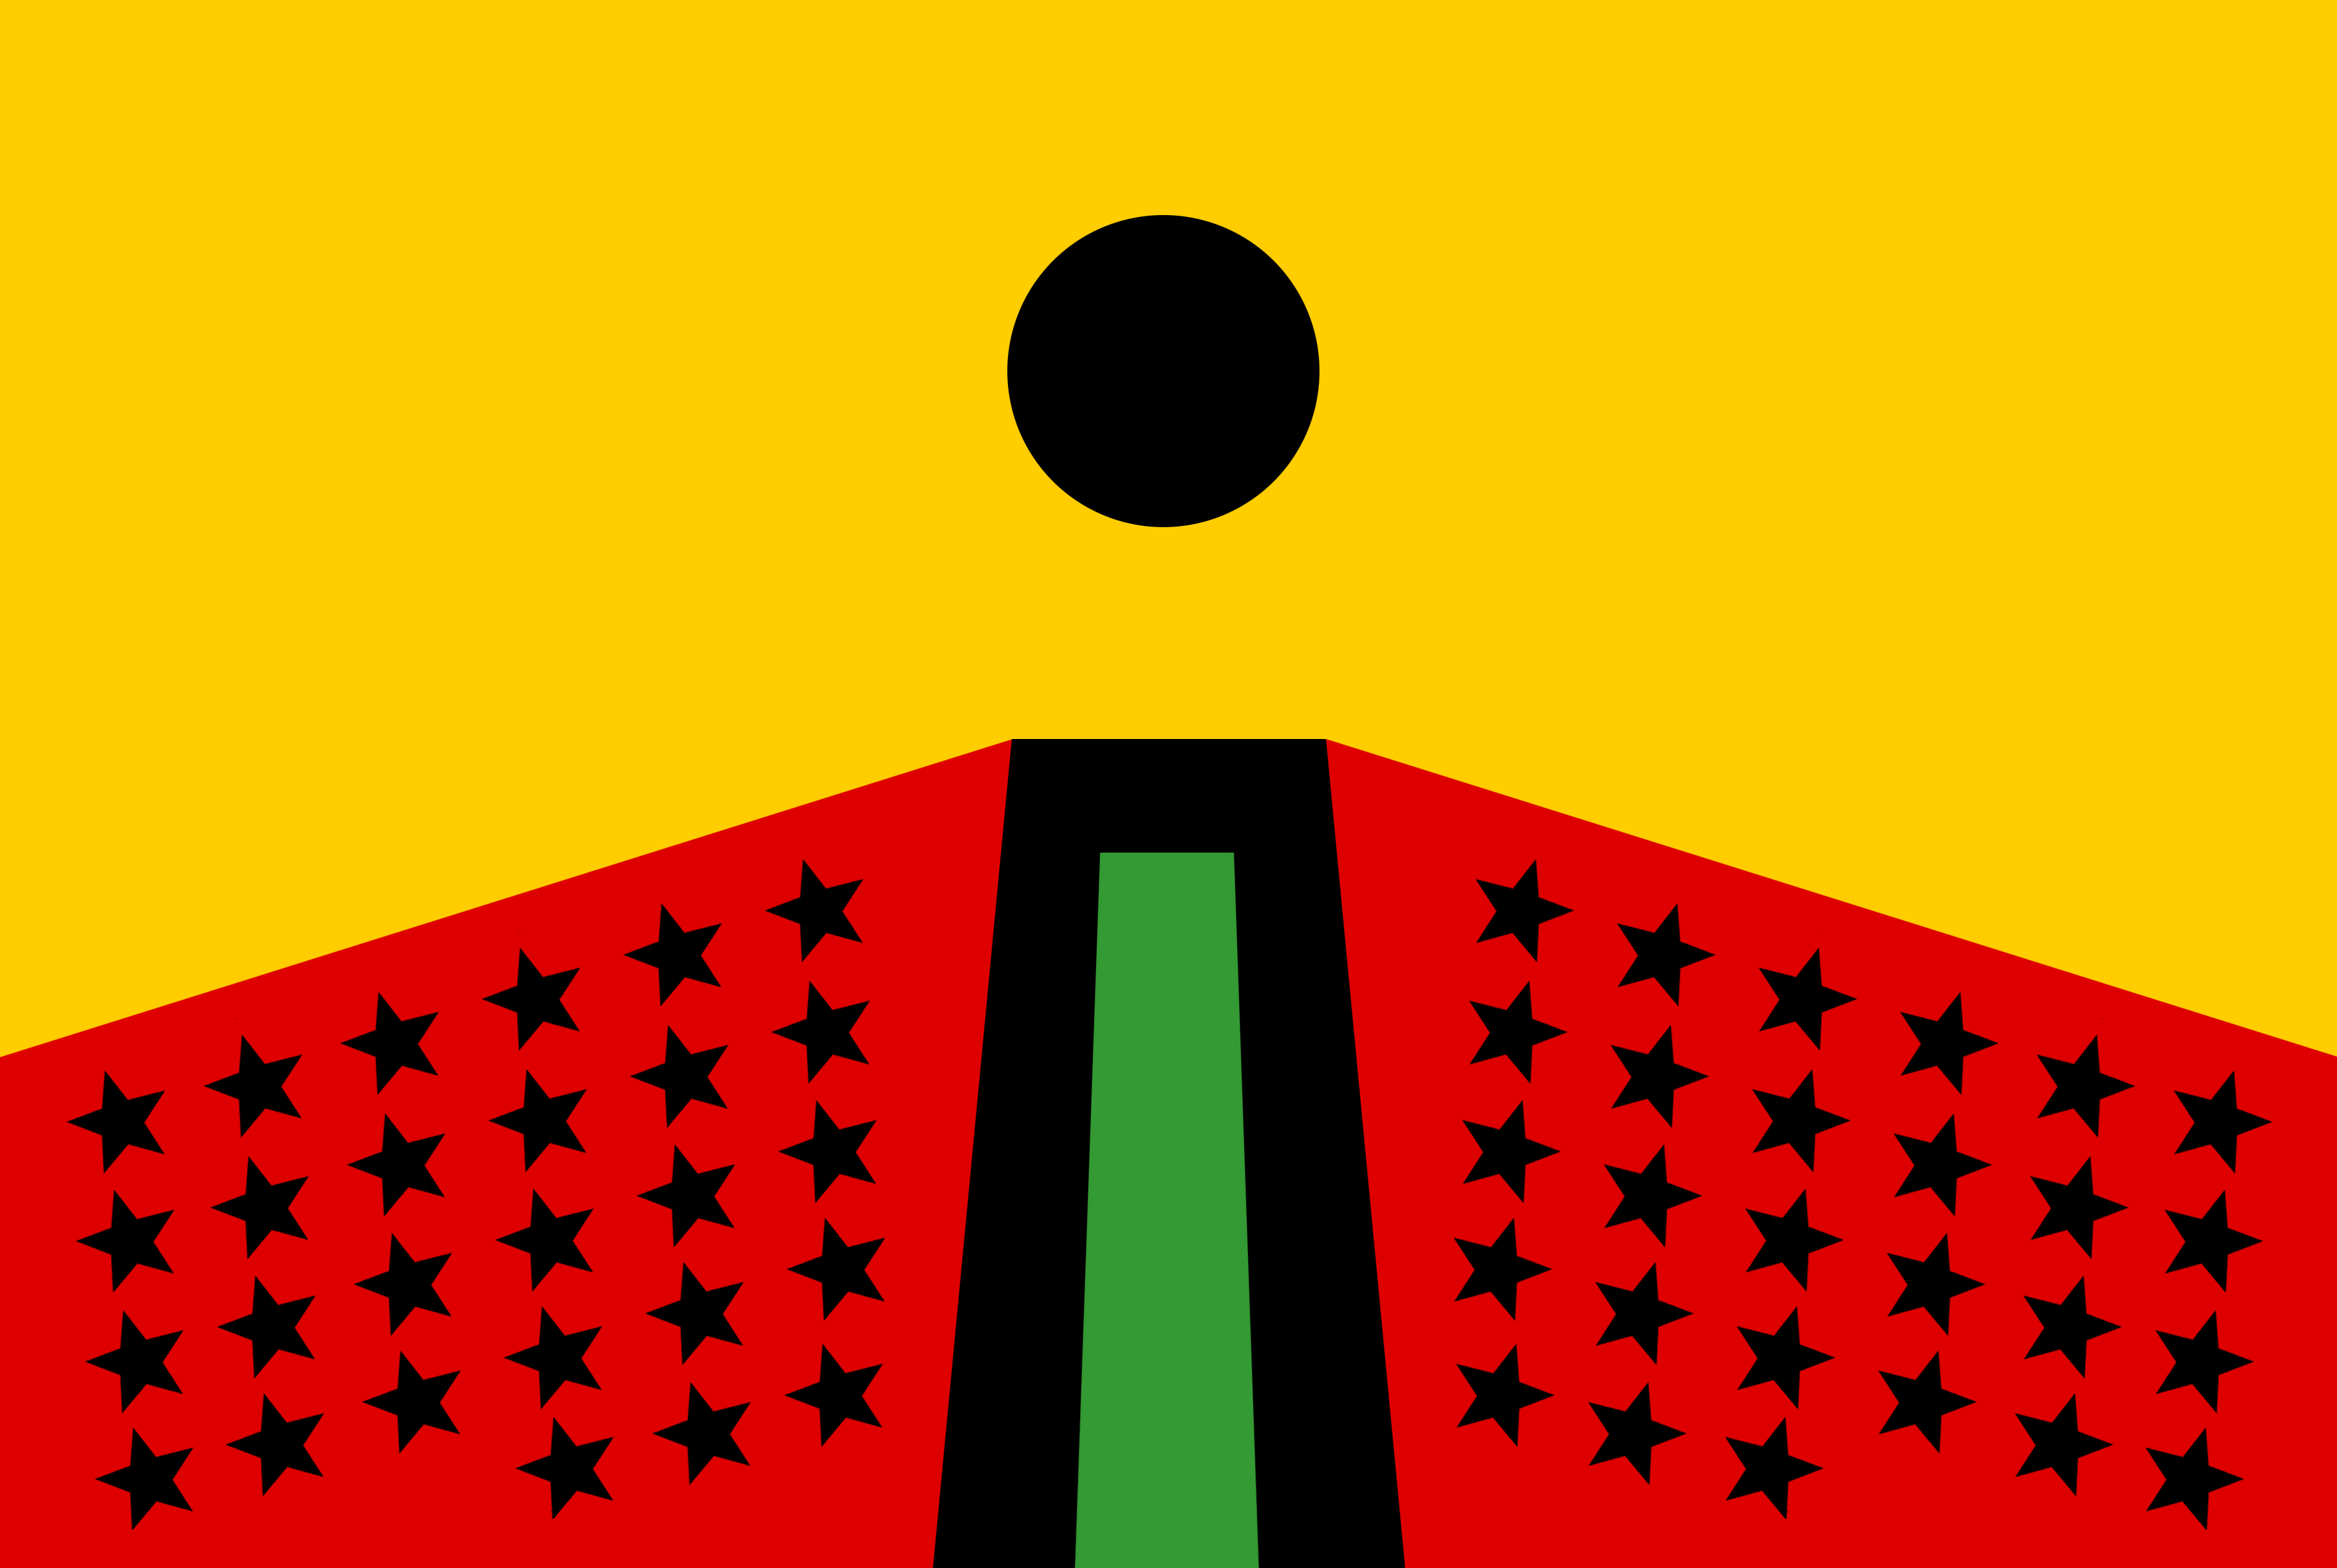 Larry Achiampong, PAN AFRICAN FLAG FOR THE RELIC TRAVELLERS ALLIANCE, 2017. Courtesy the artist